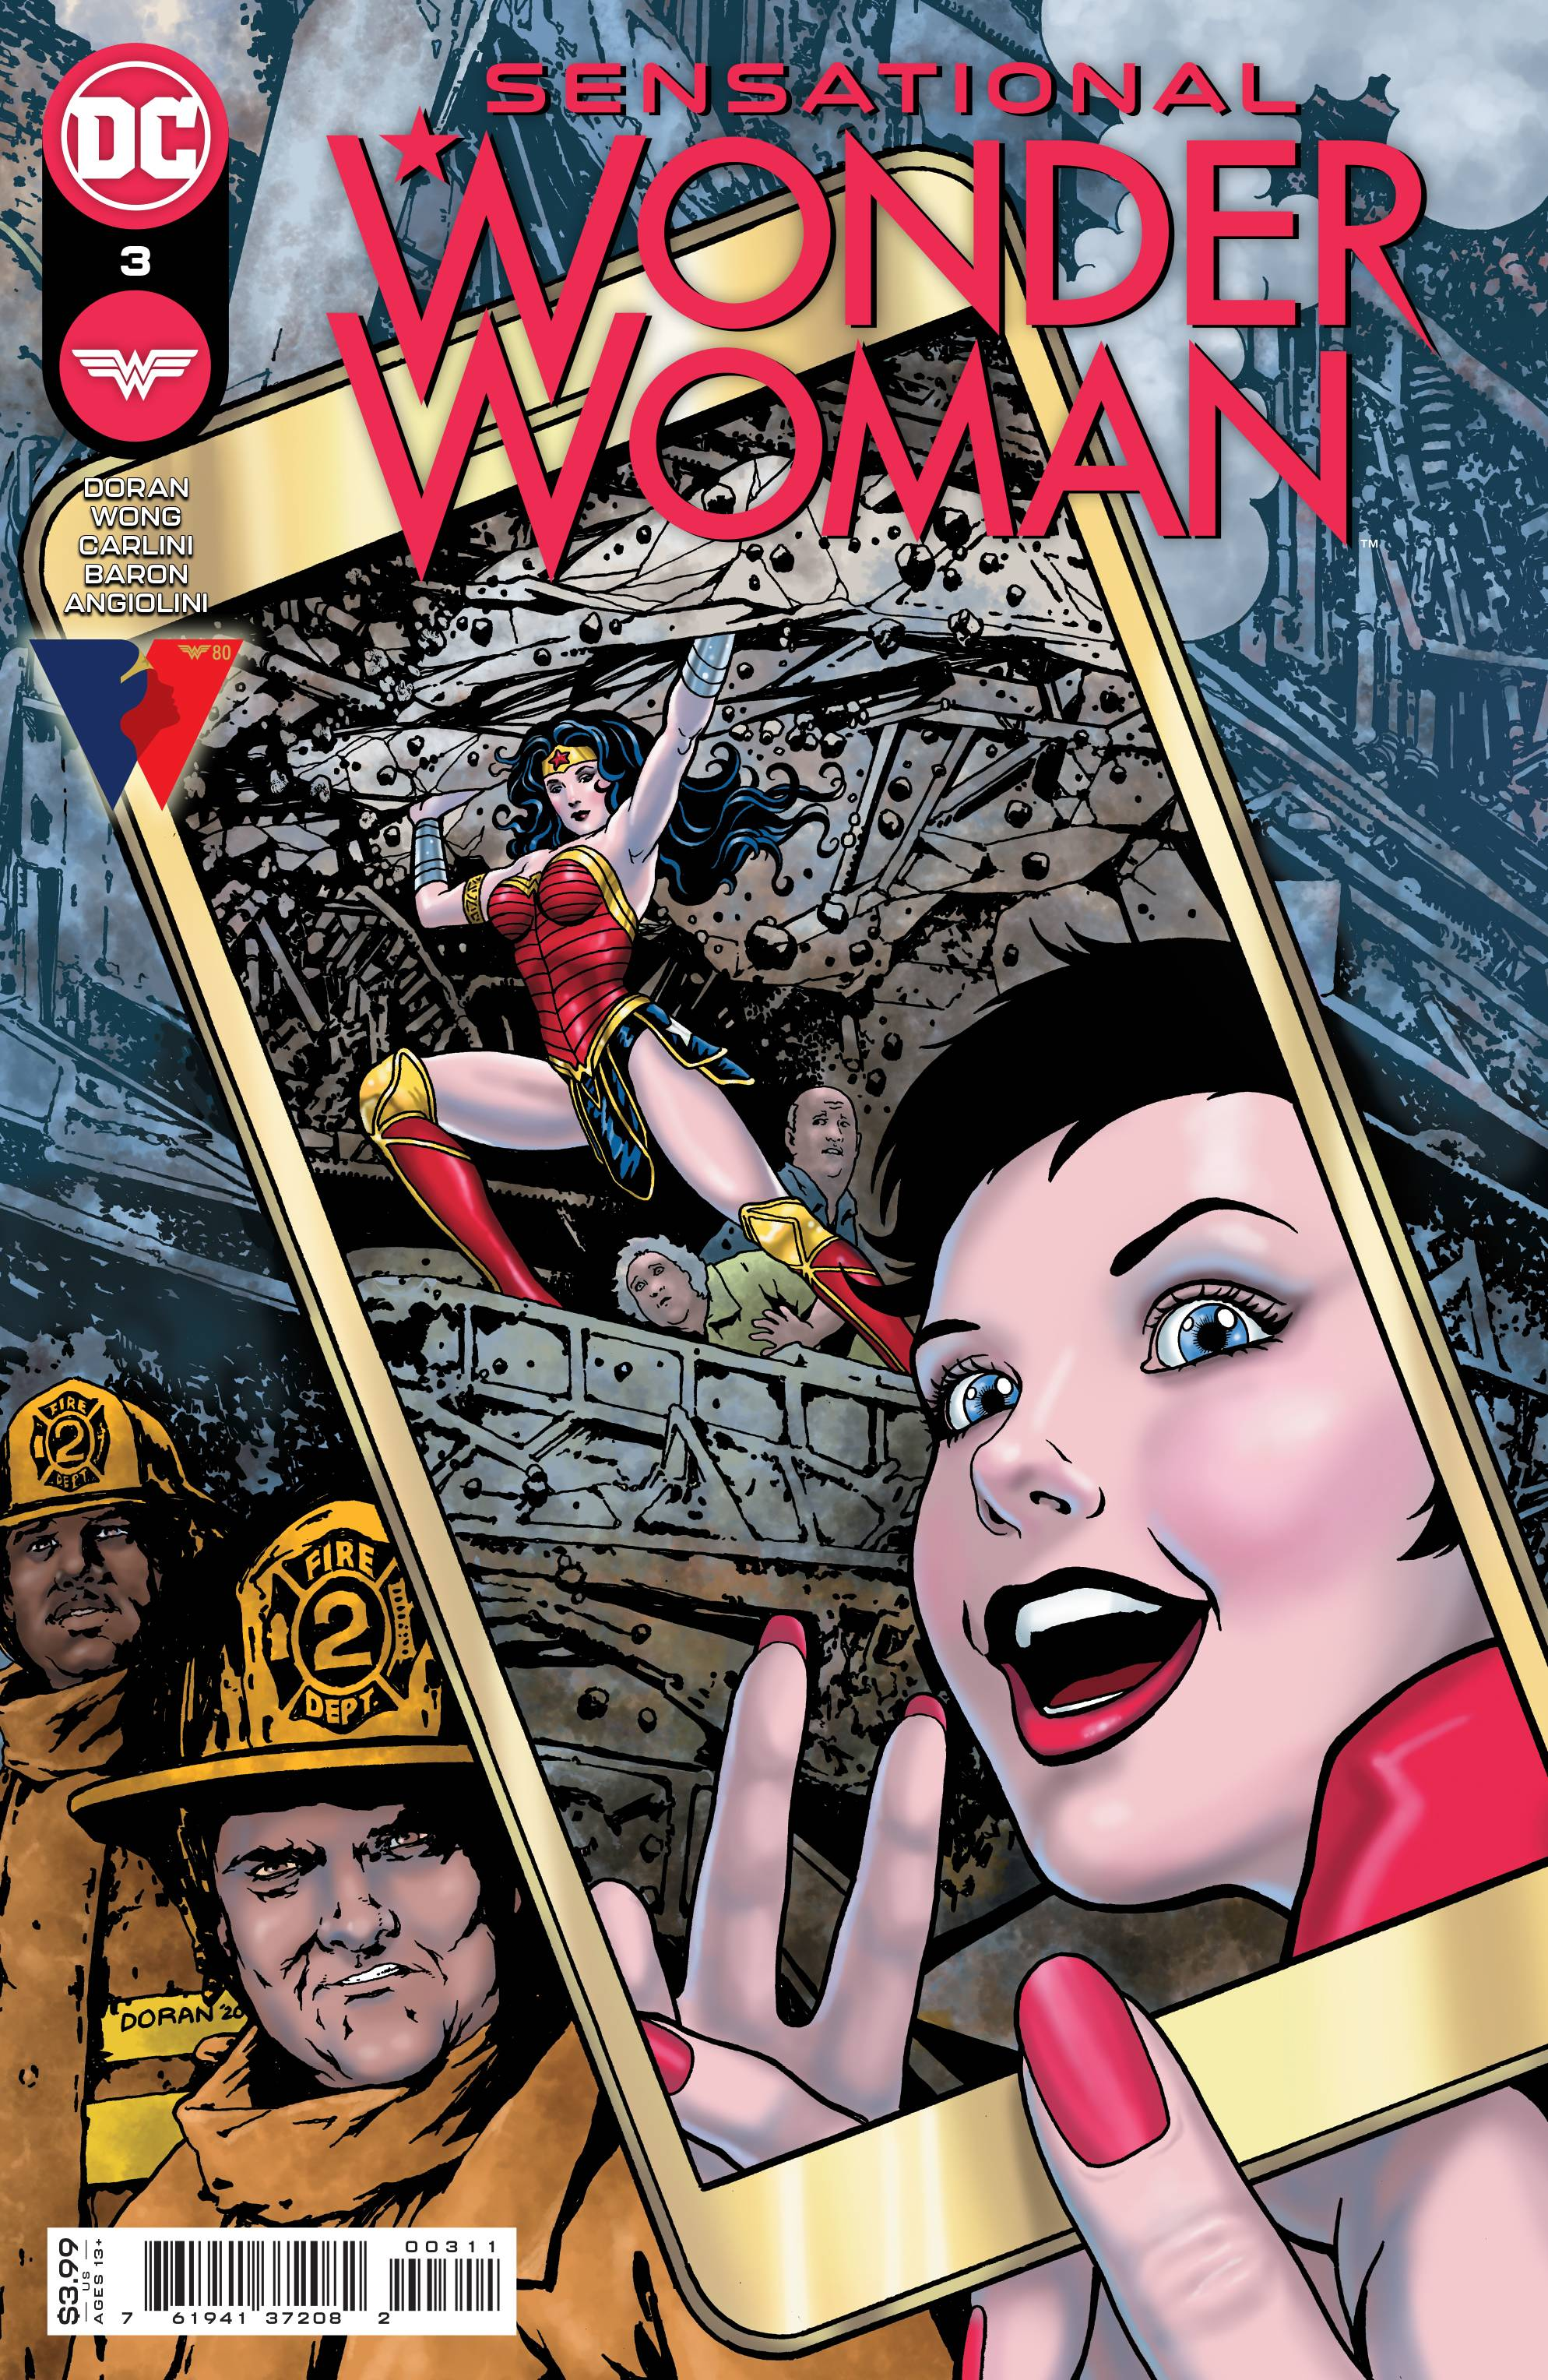 SENSATIONAL WONDER WOMAN #3 CVR A DORAN